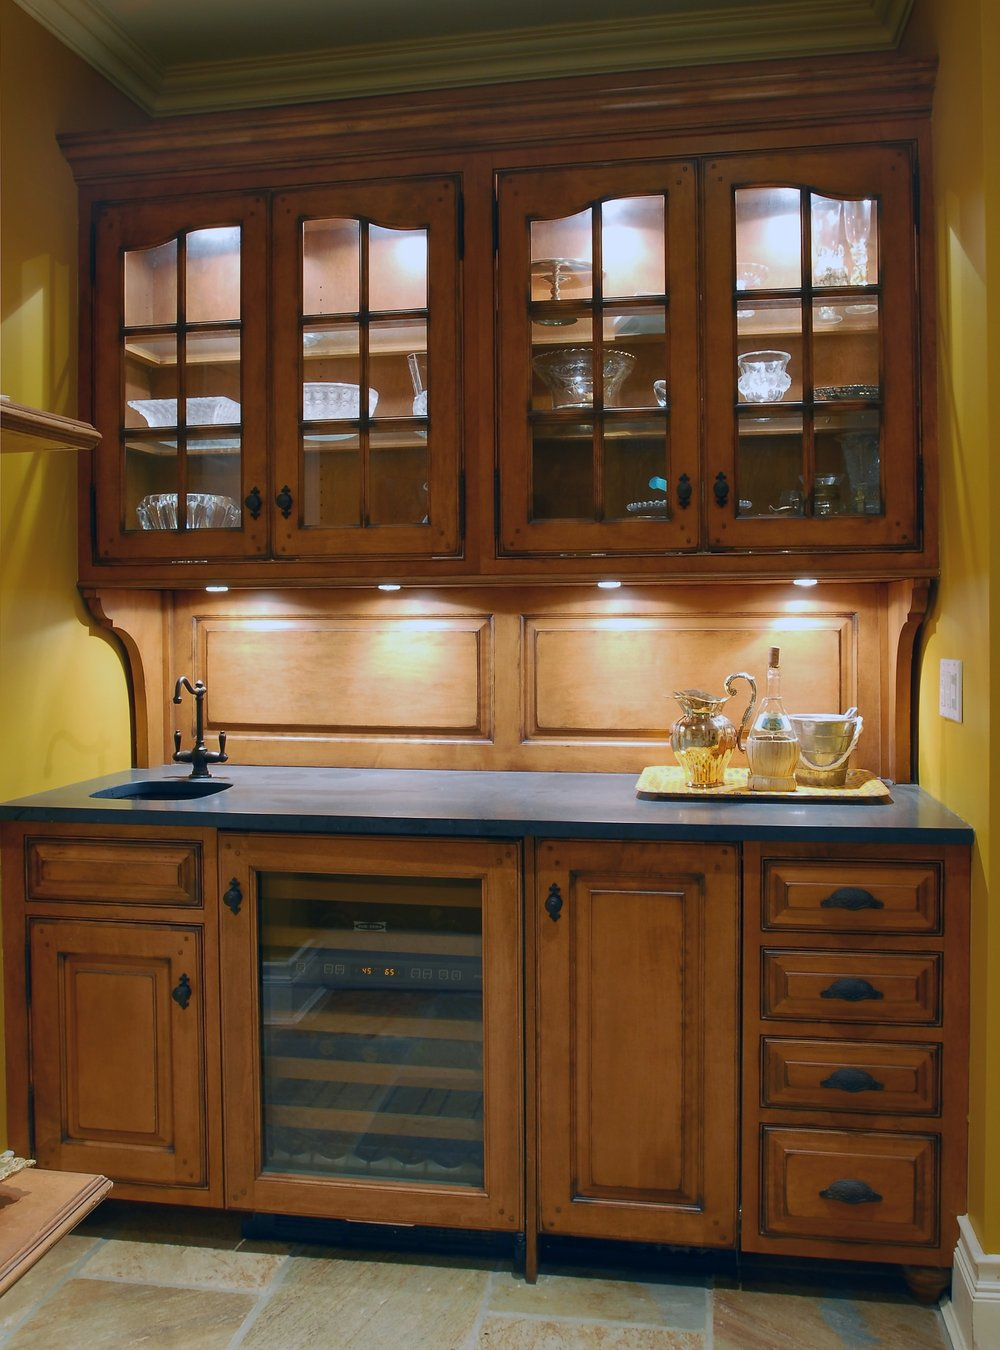 Traditional style kitchen with large wooden cabinet